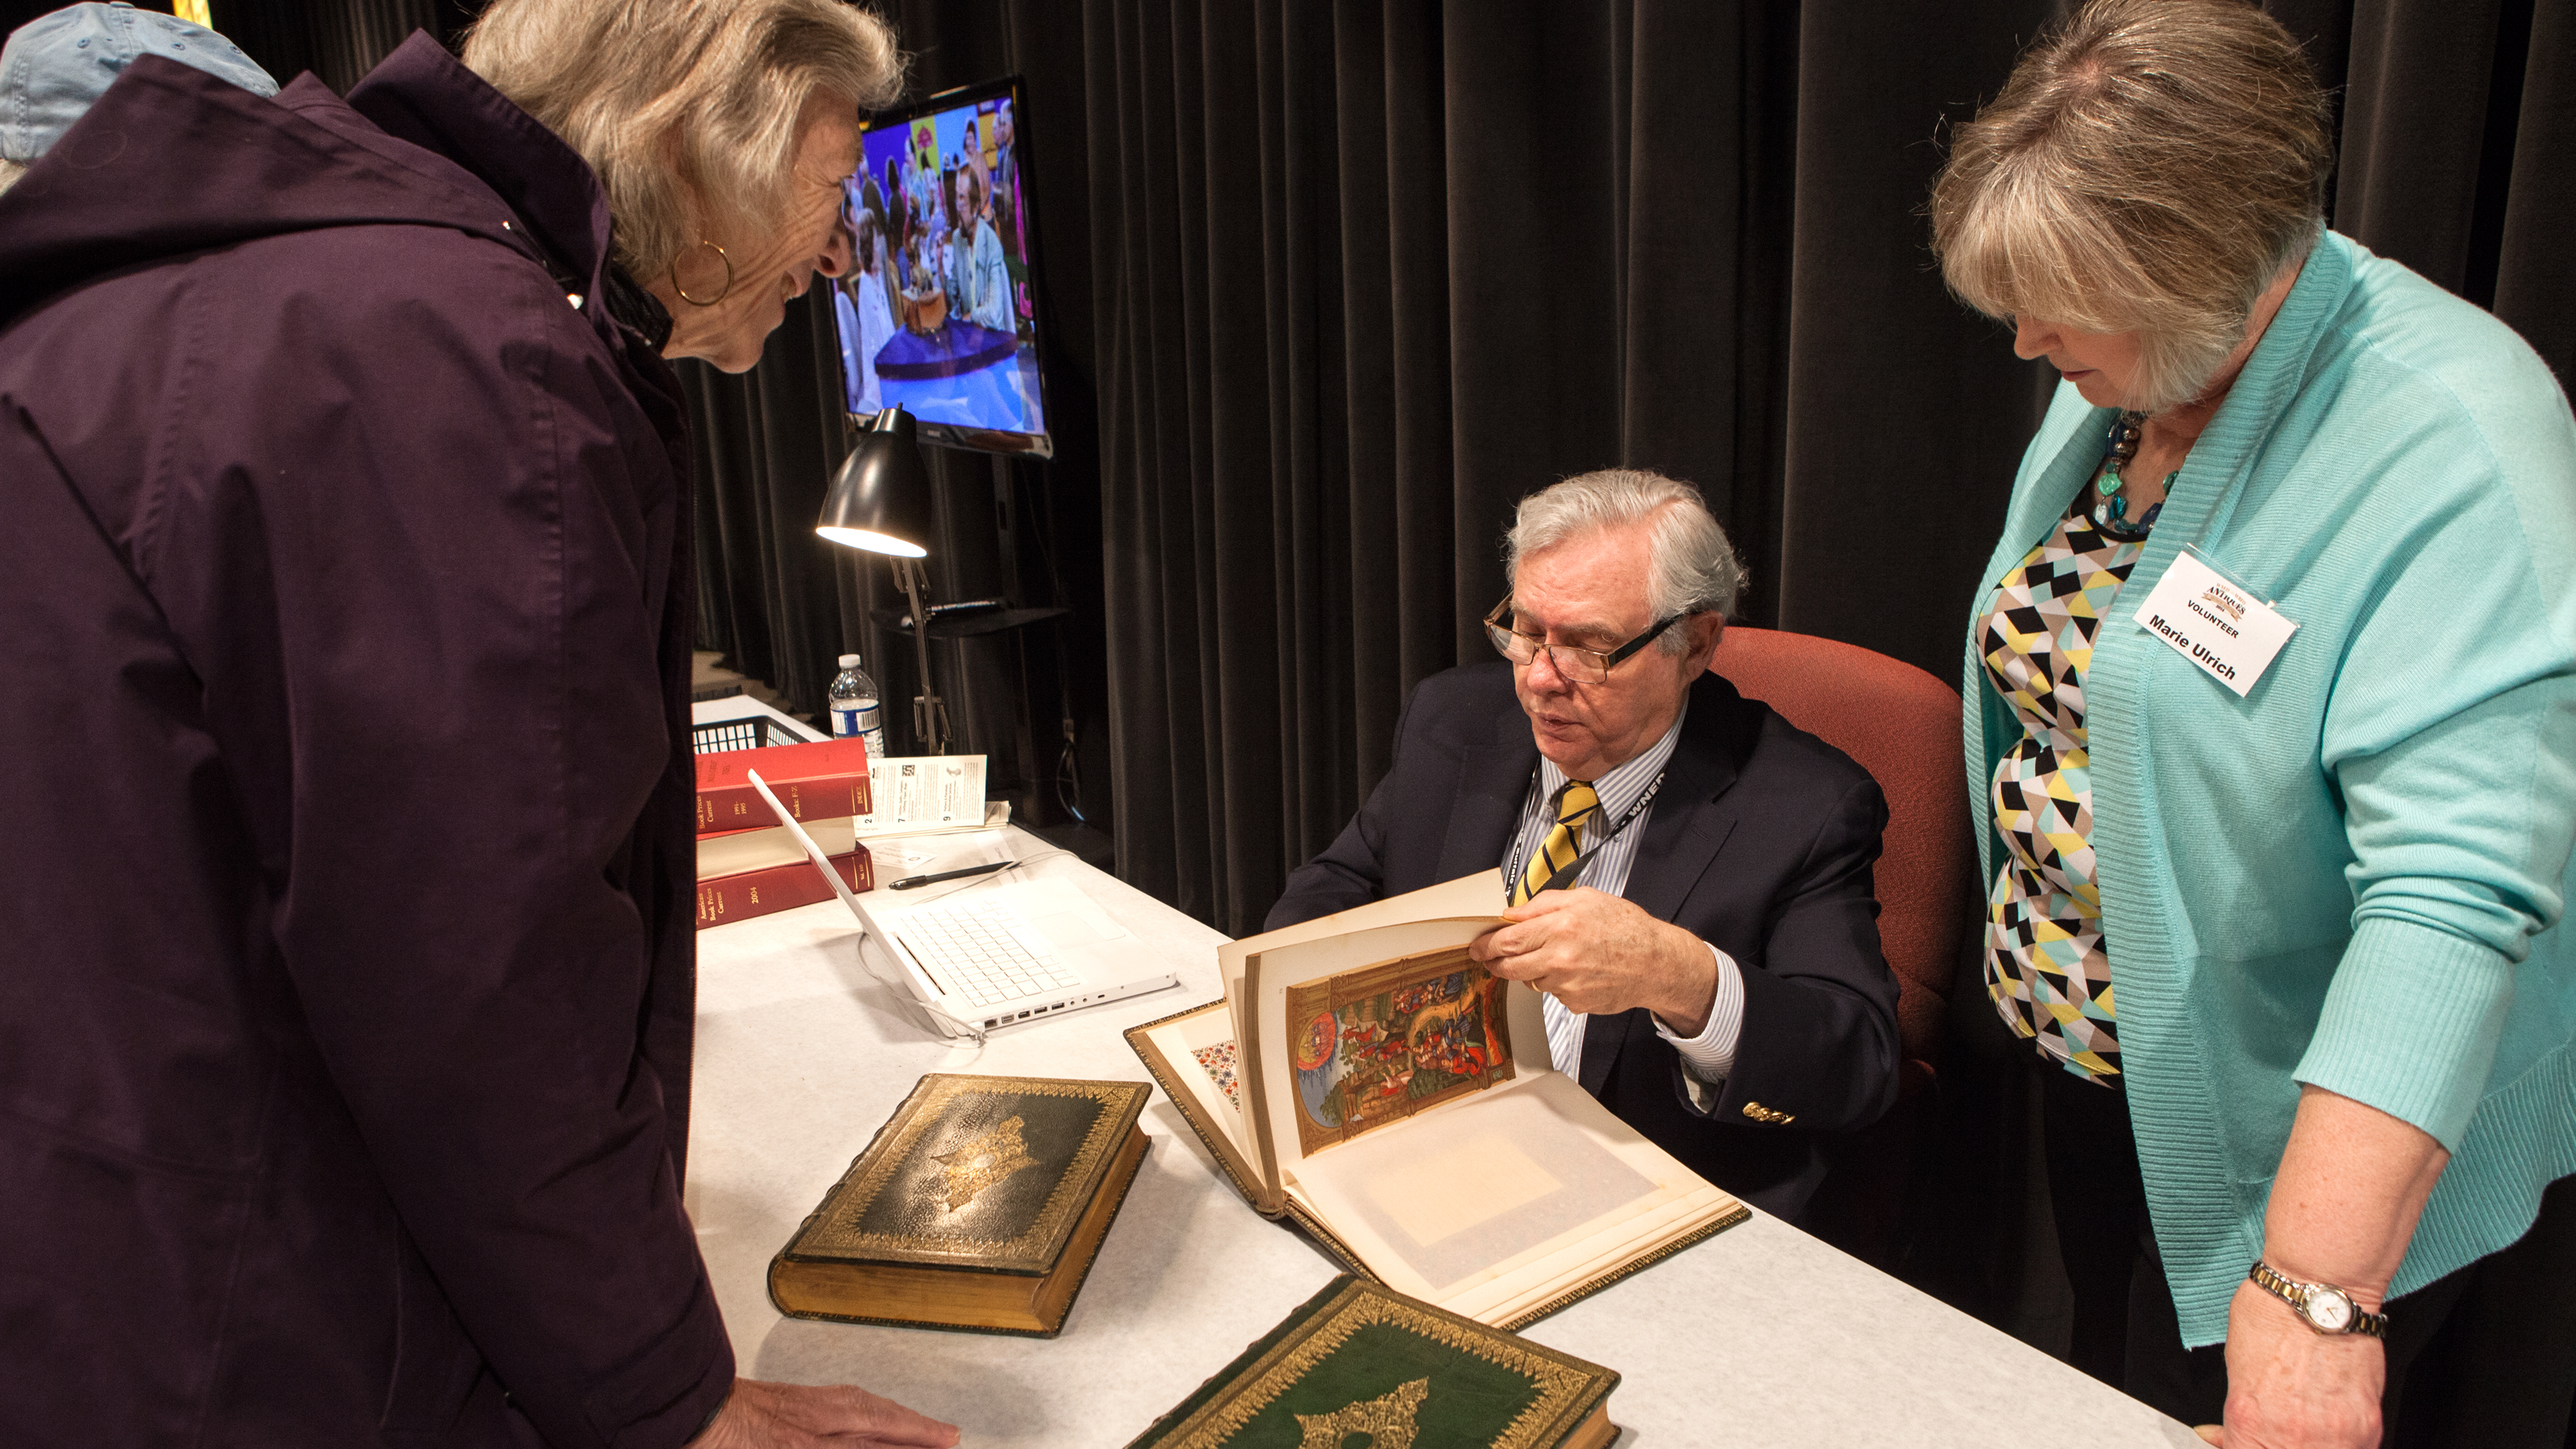 Book appraisal at the WNED | WBFO Antiques Home Show